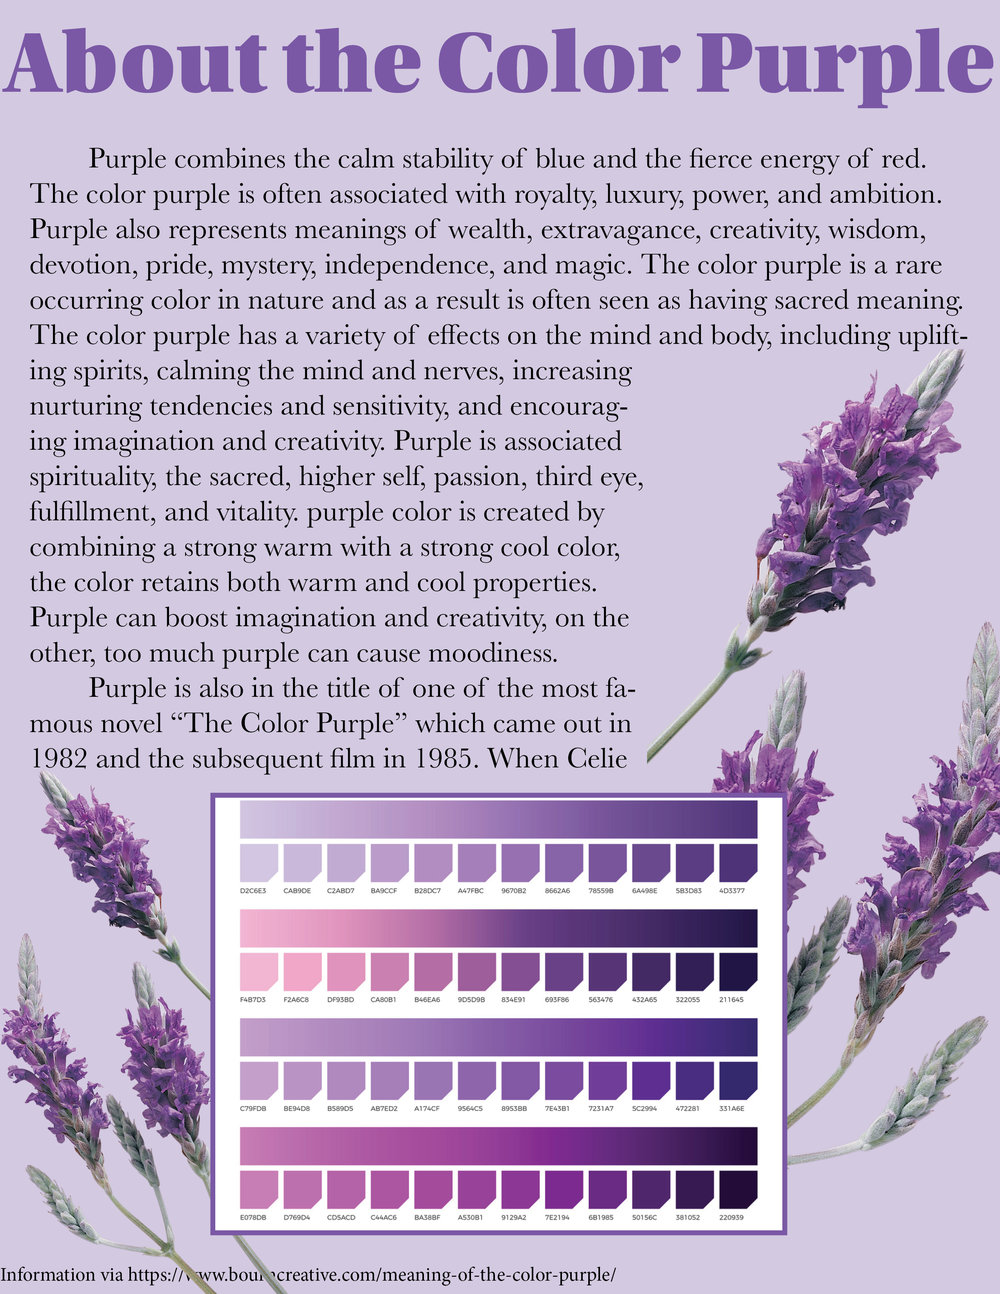 about the color purple.jpg